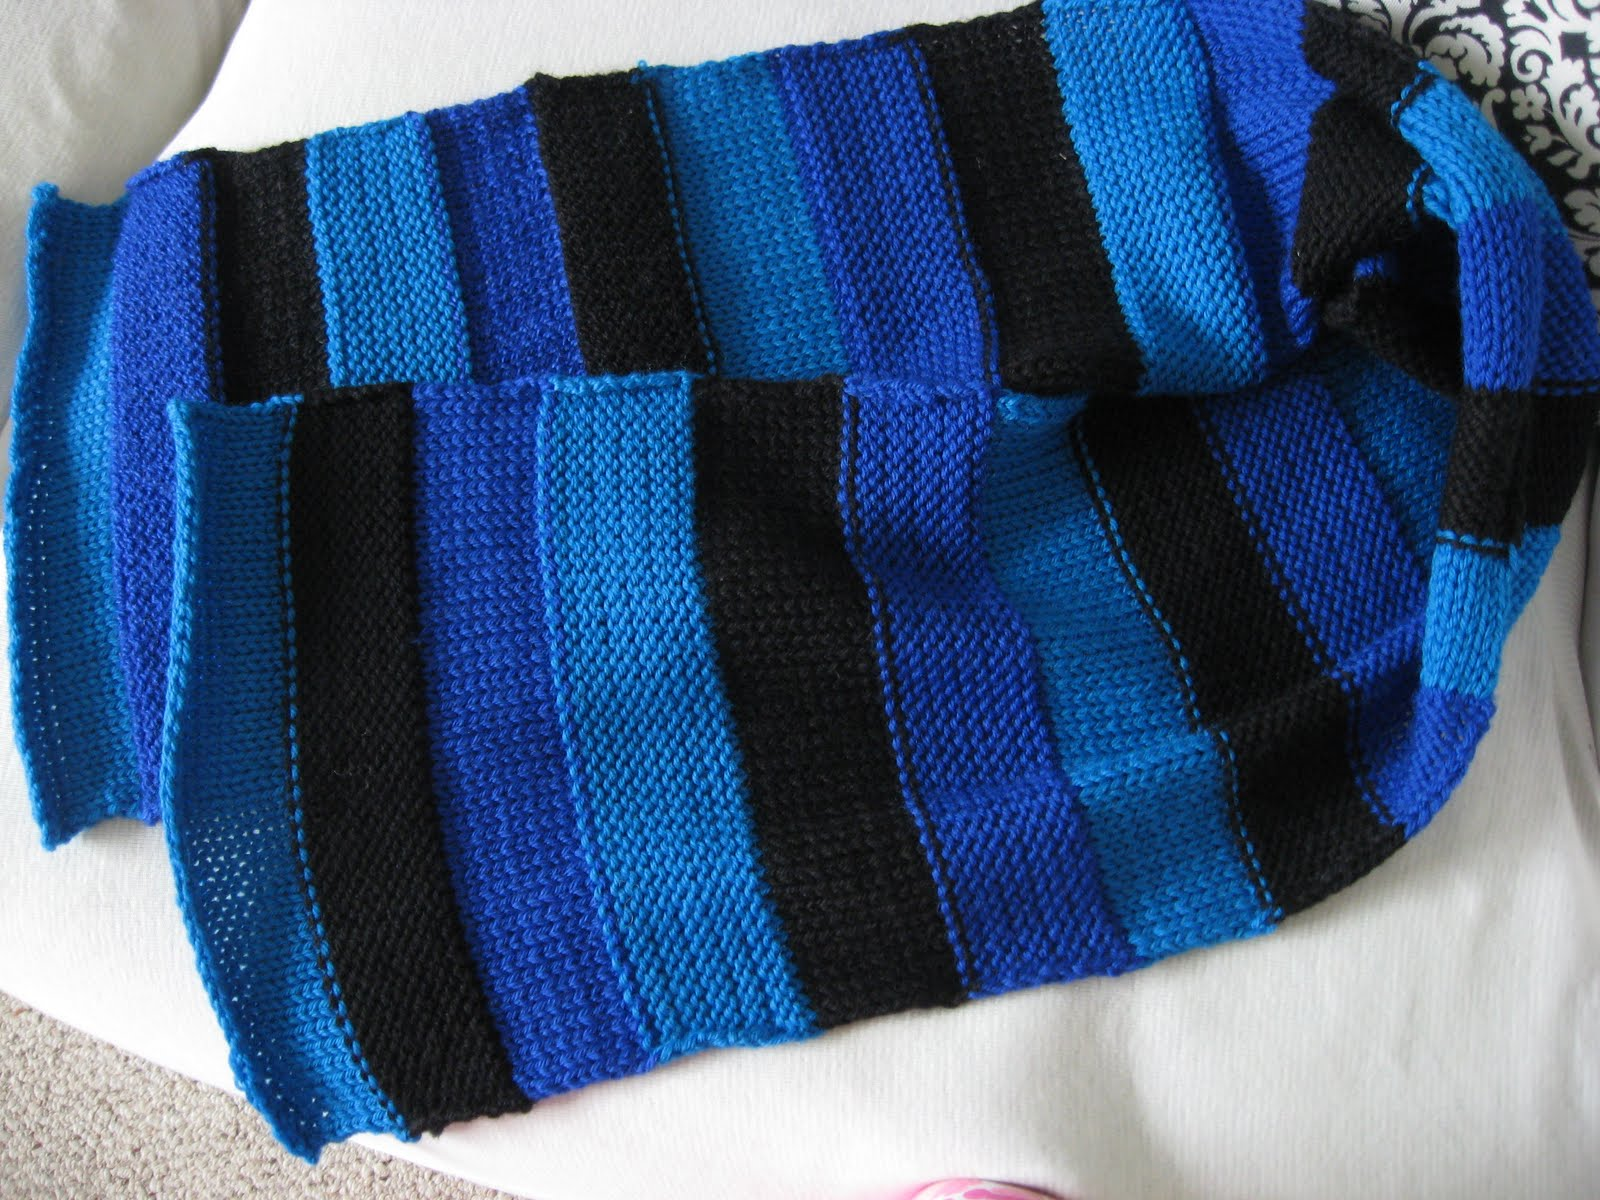 Knitting Machine Scarf Pattern : *+*MaGic PiXie KniTteR+*+: Not on a Rolll- Knitting Machine Scarf